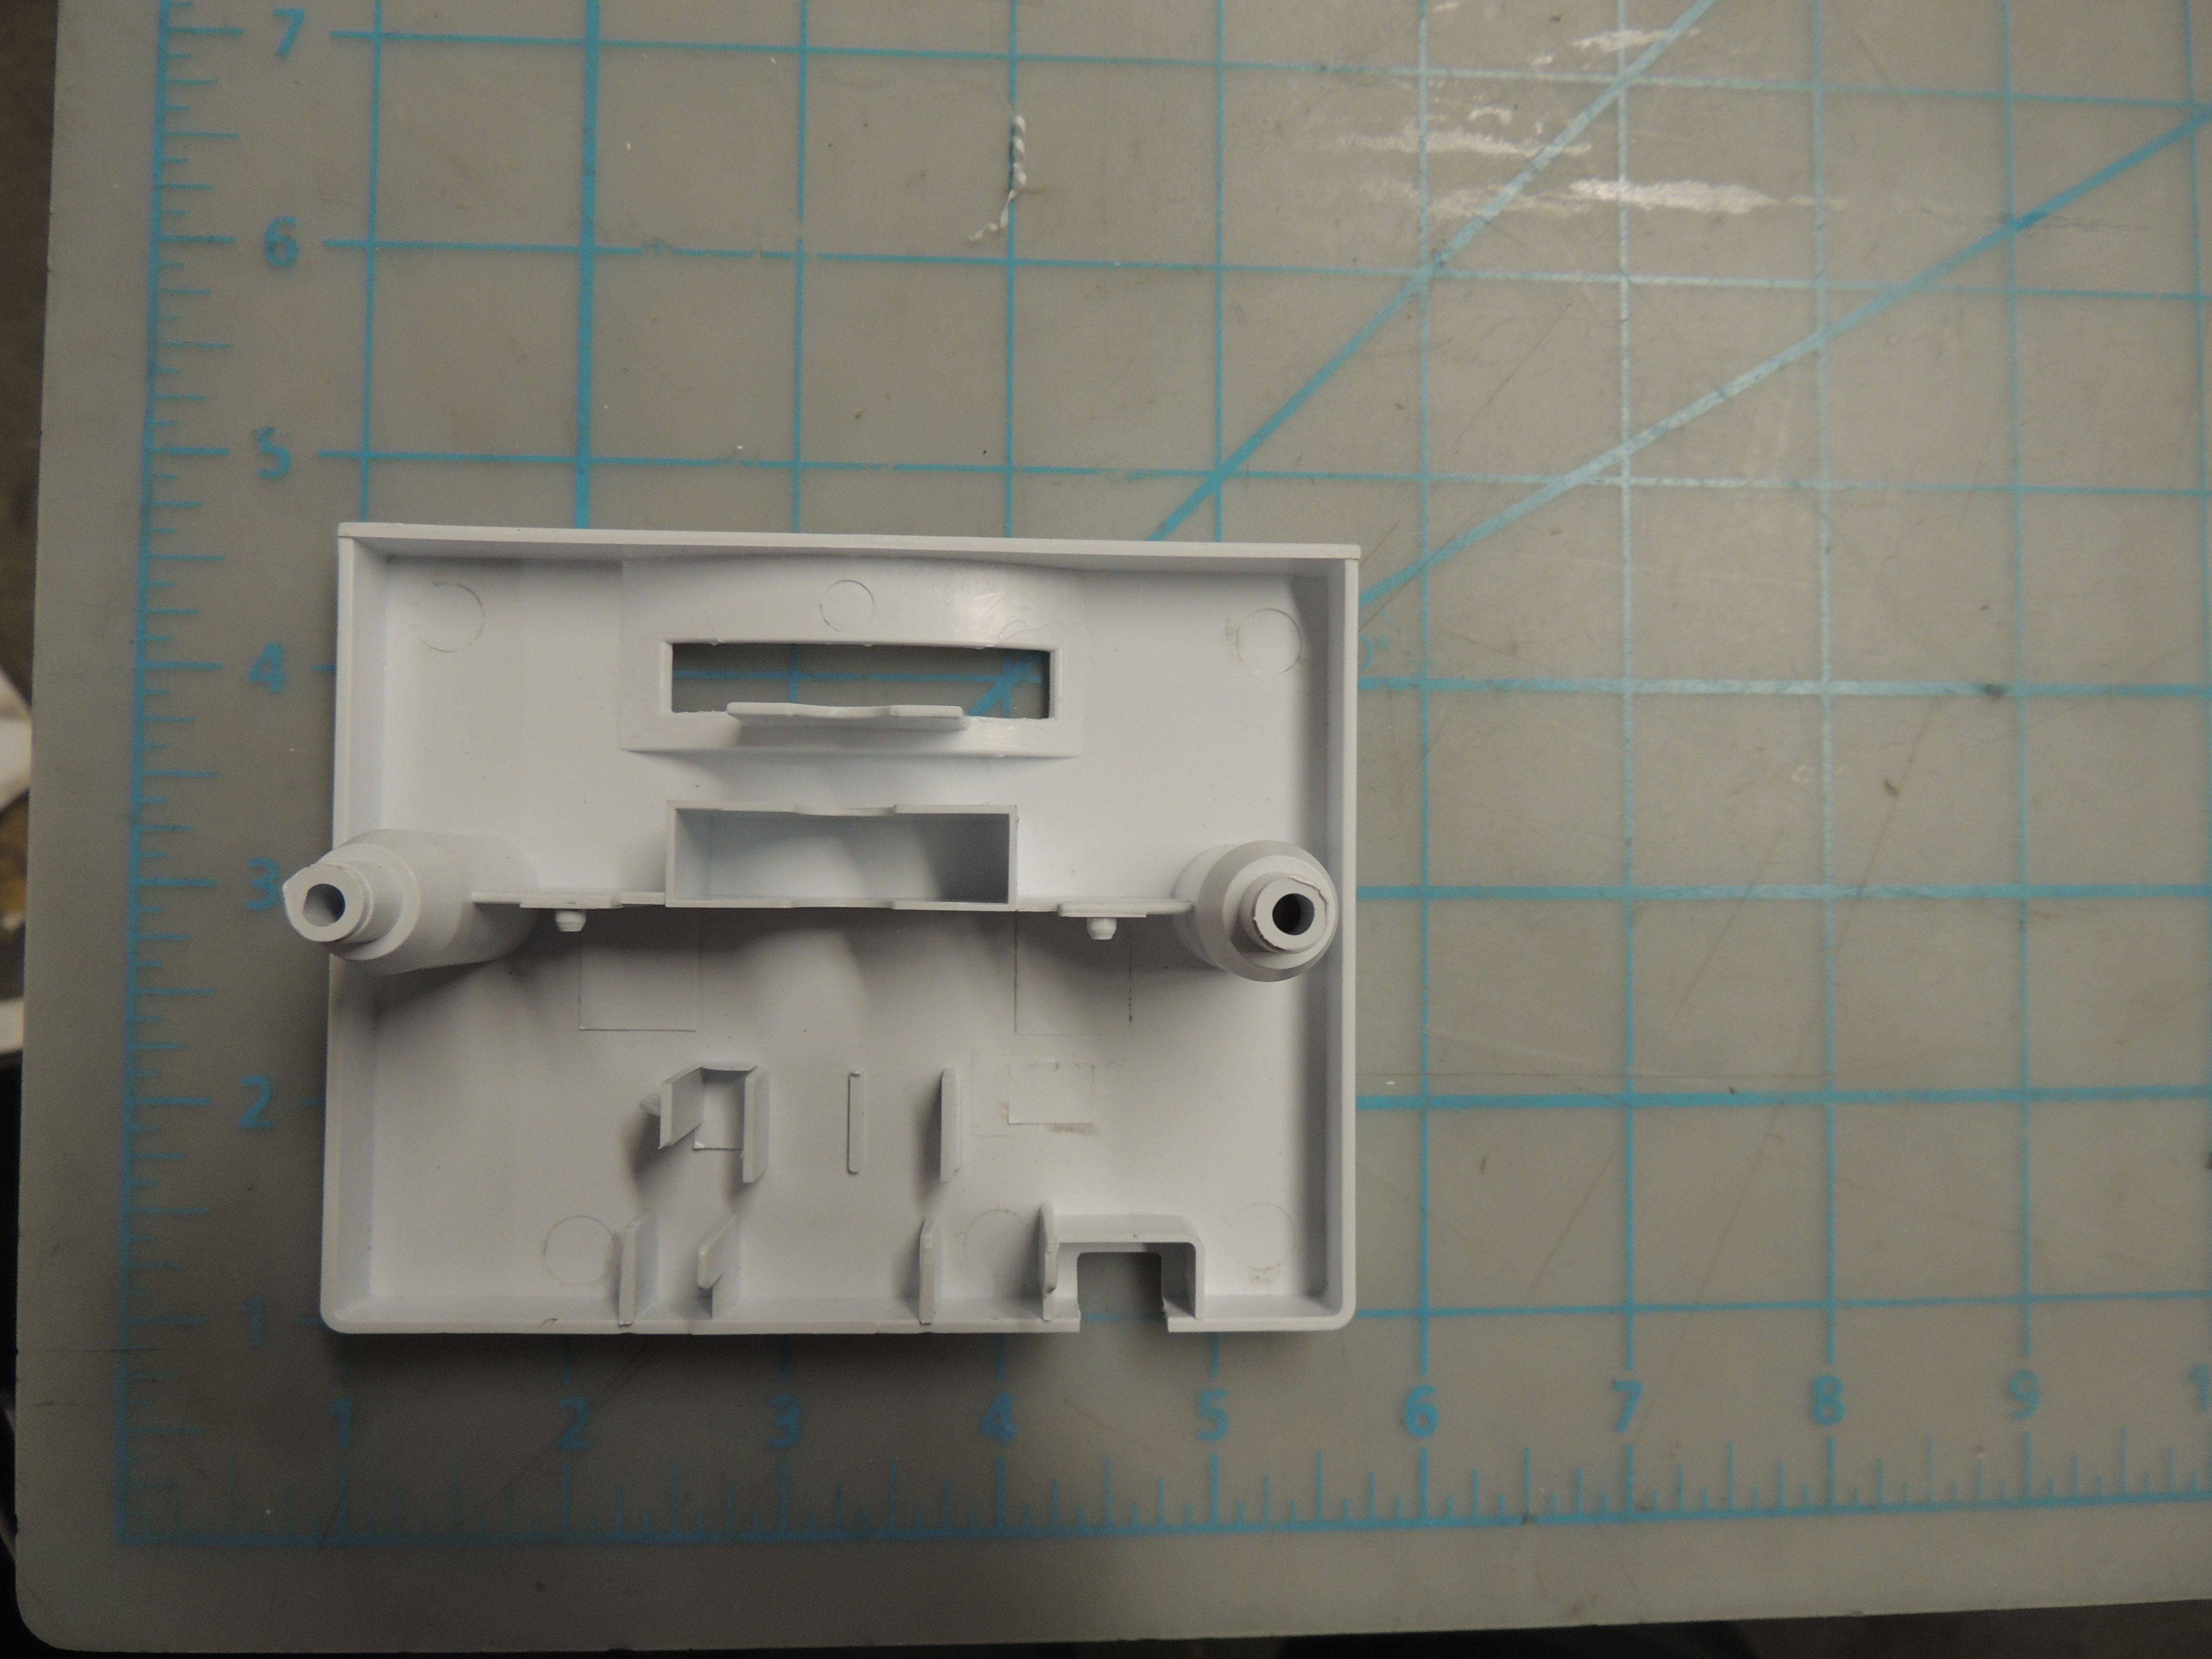 DUF THERMOSTAT COVER